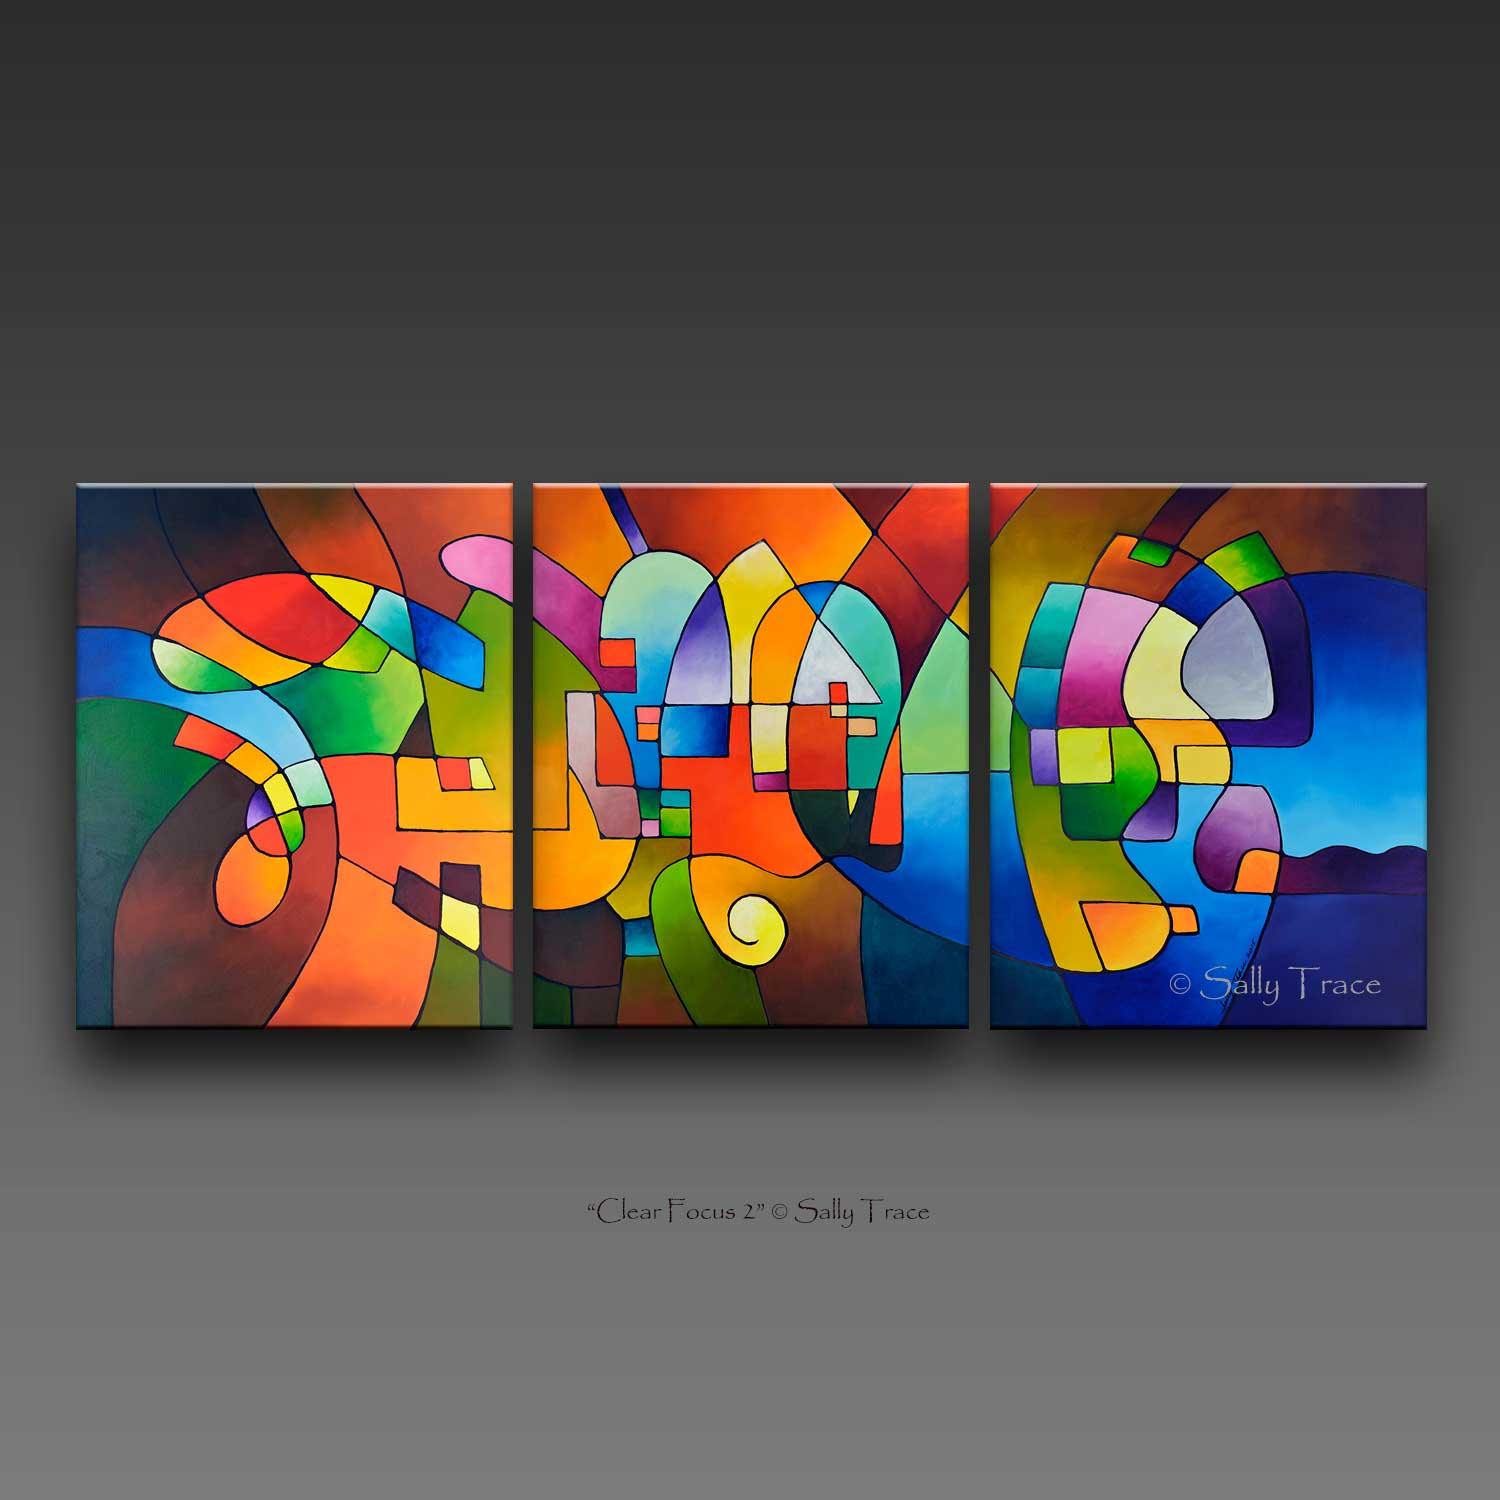 Original abstract paintings and prints made on multiple canvases